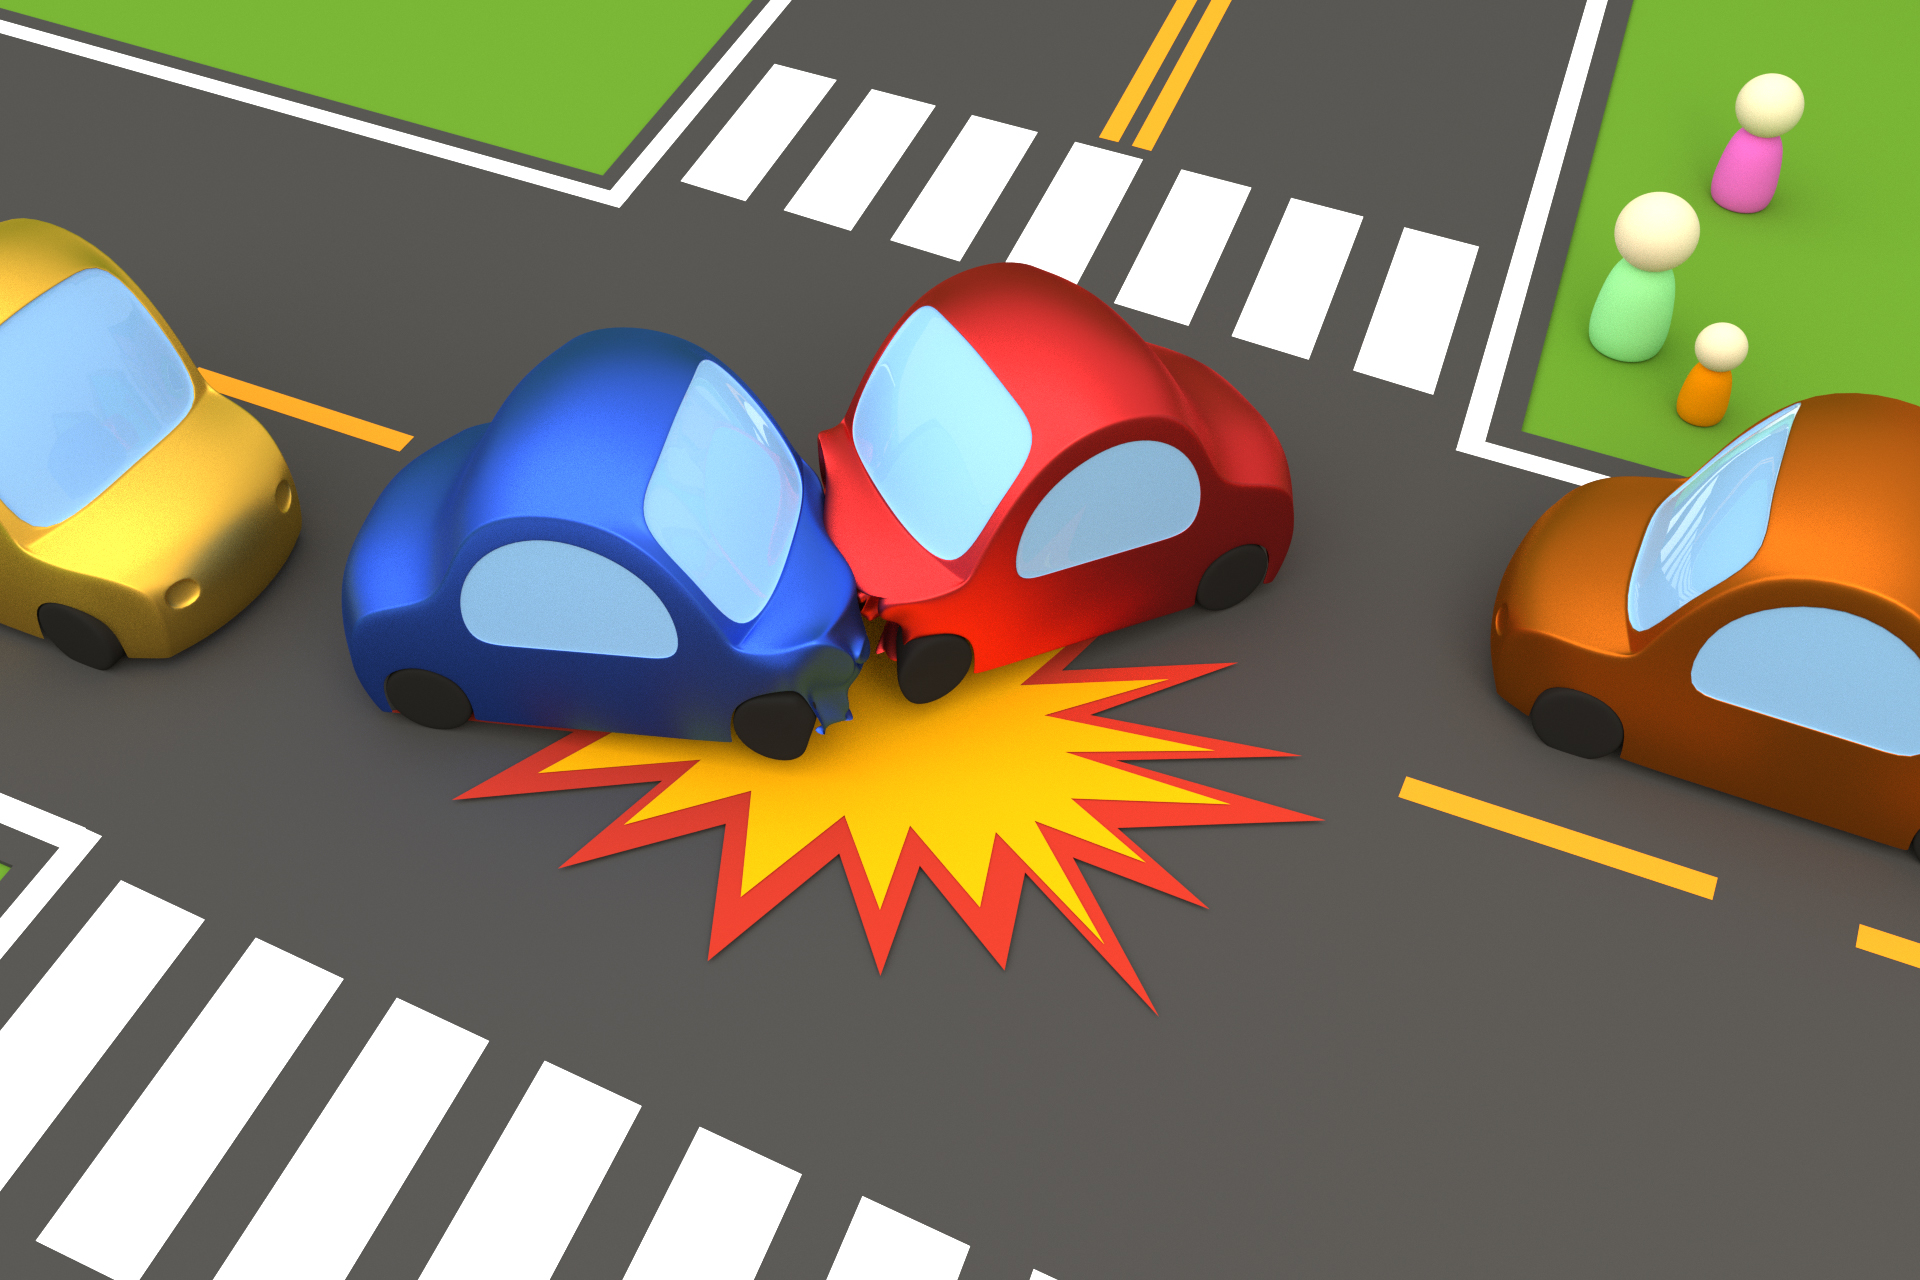 Two Vehicle Left Turn Collision Free Image Download